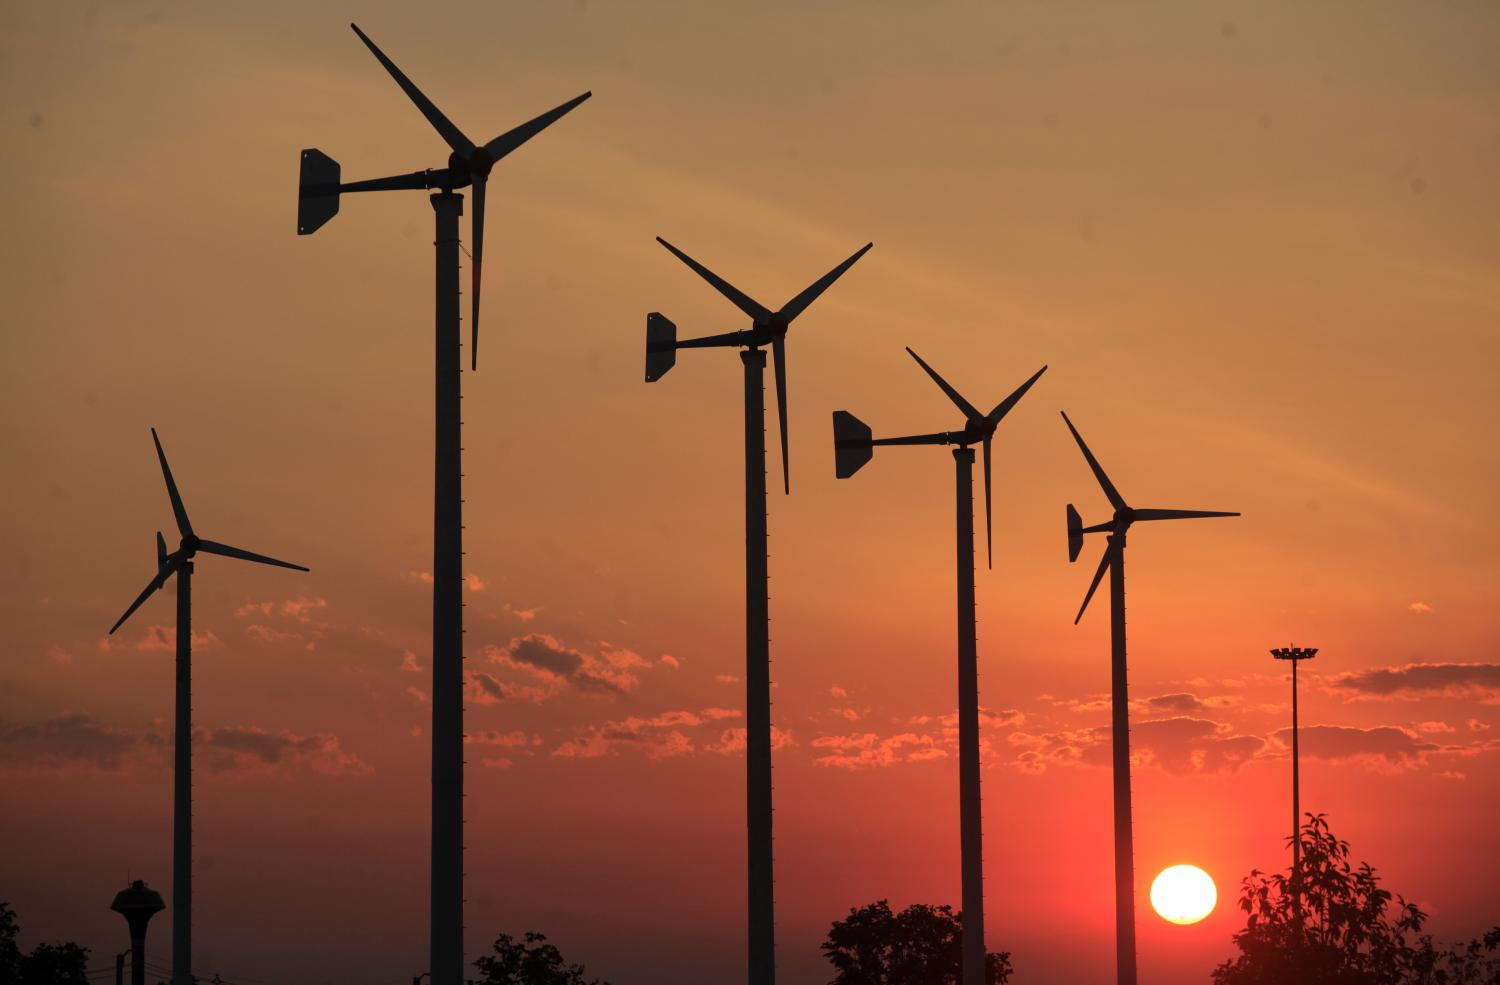 thailands gulf to acquire two vietnamese wind farms